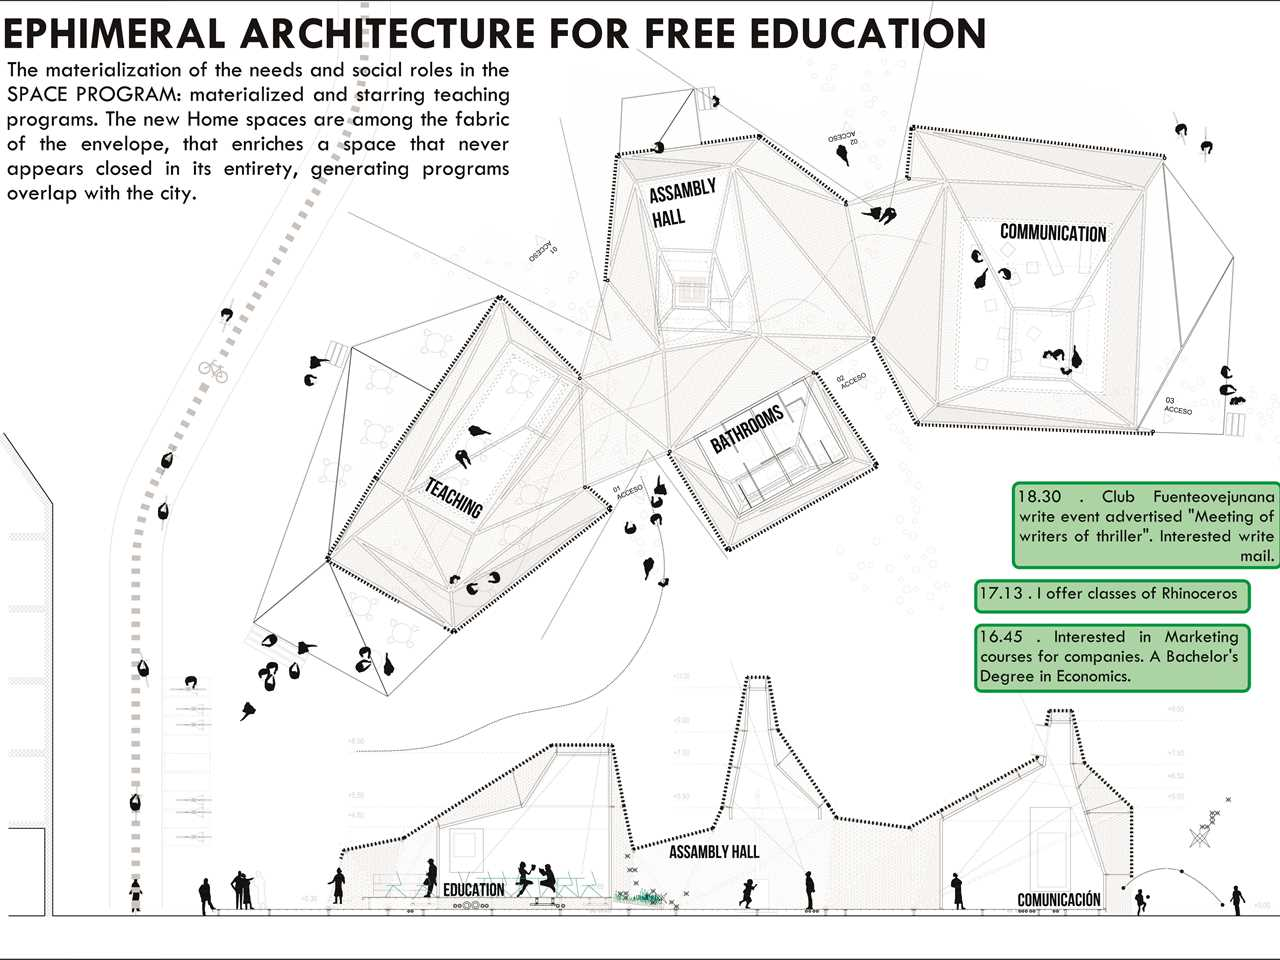 Project entry 2014 Europe – X Marks the Spot: Socially-focused architectural design, Spain